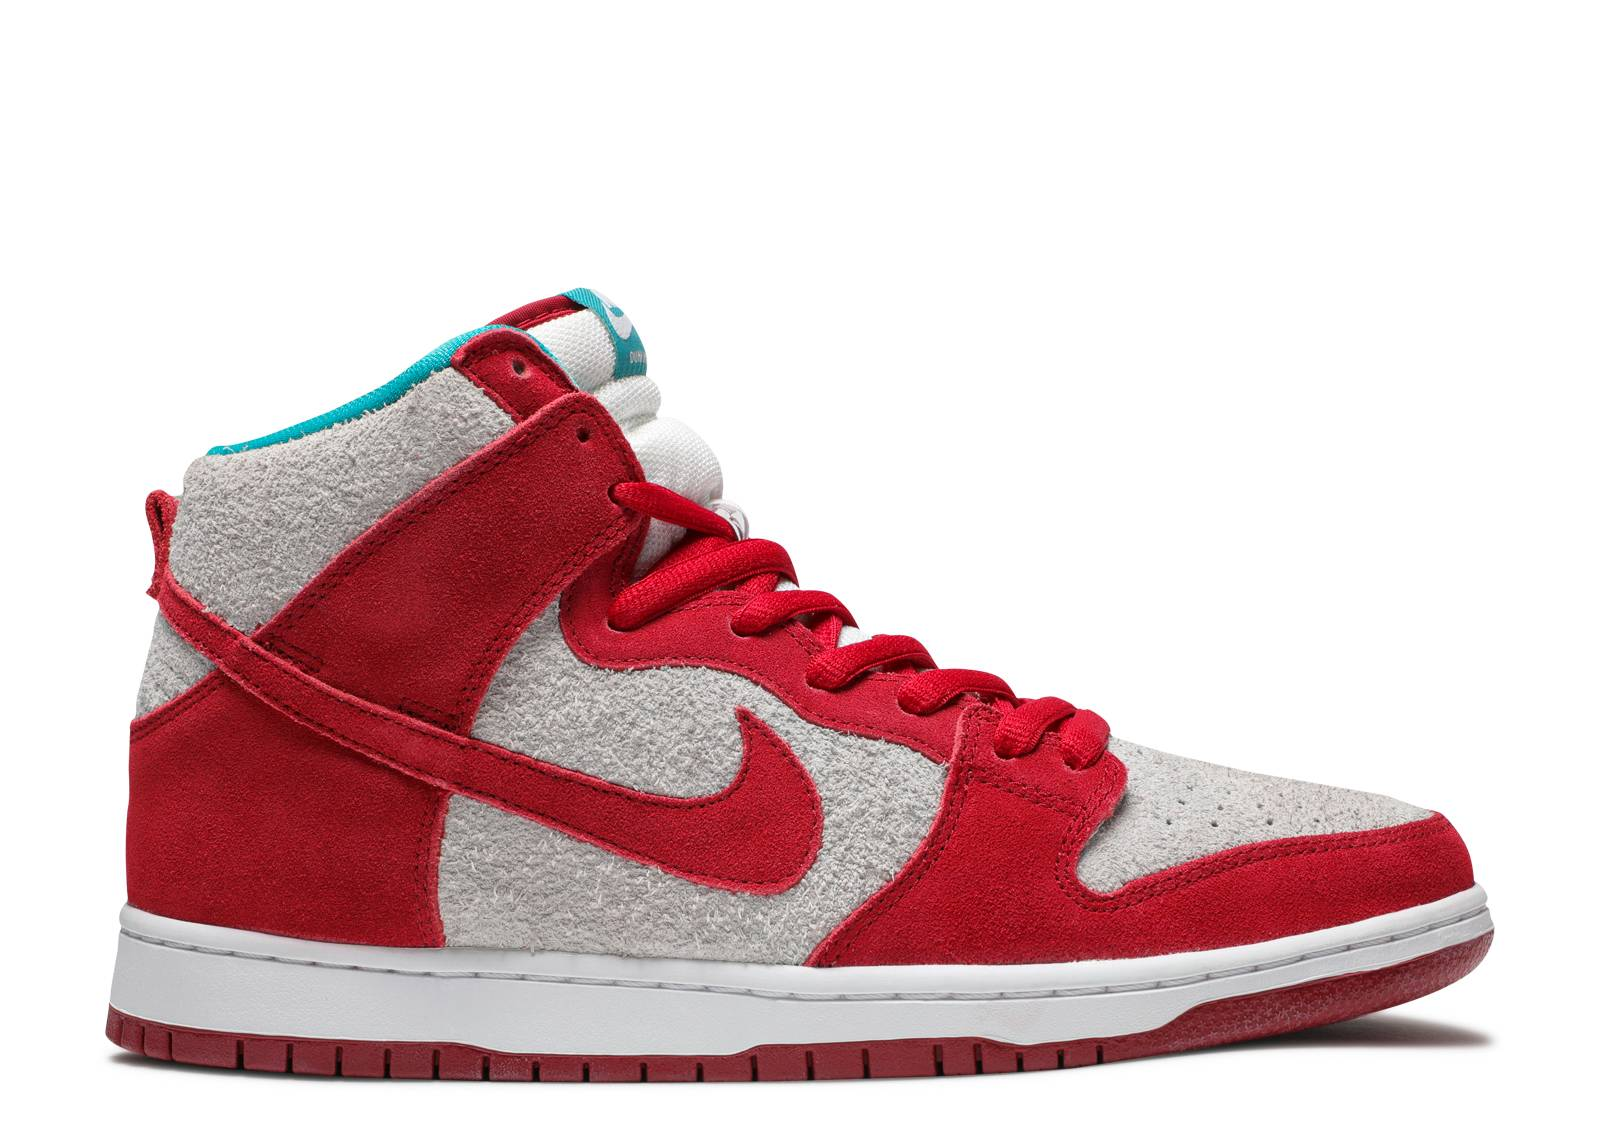 Men's Nike Dunk High Pro SB Gym Red White Sneakers : Y14y1474